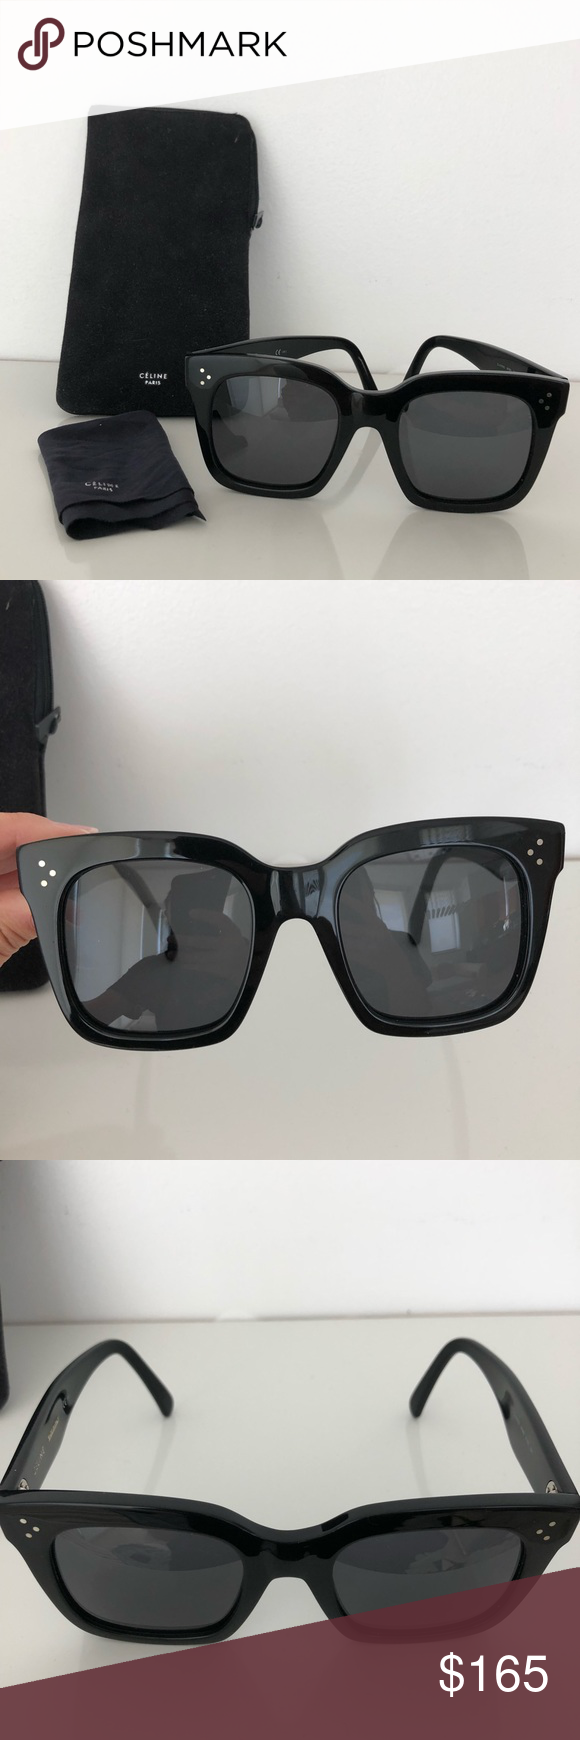 47ff81c593 Céline Tilda CL 4176 s Sunglasses Amazing oversized black Celine sunglasses.  Very minor scratches that you cannot see. Lenses are intact.